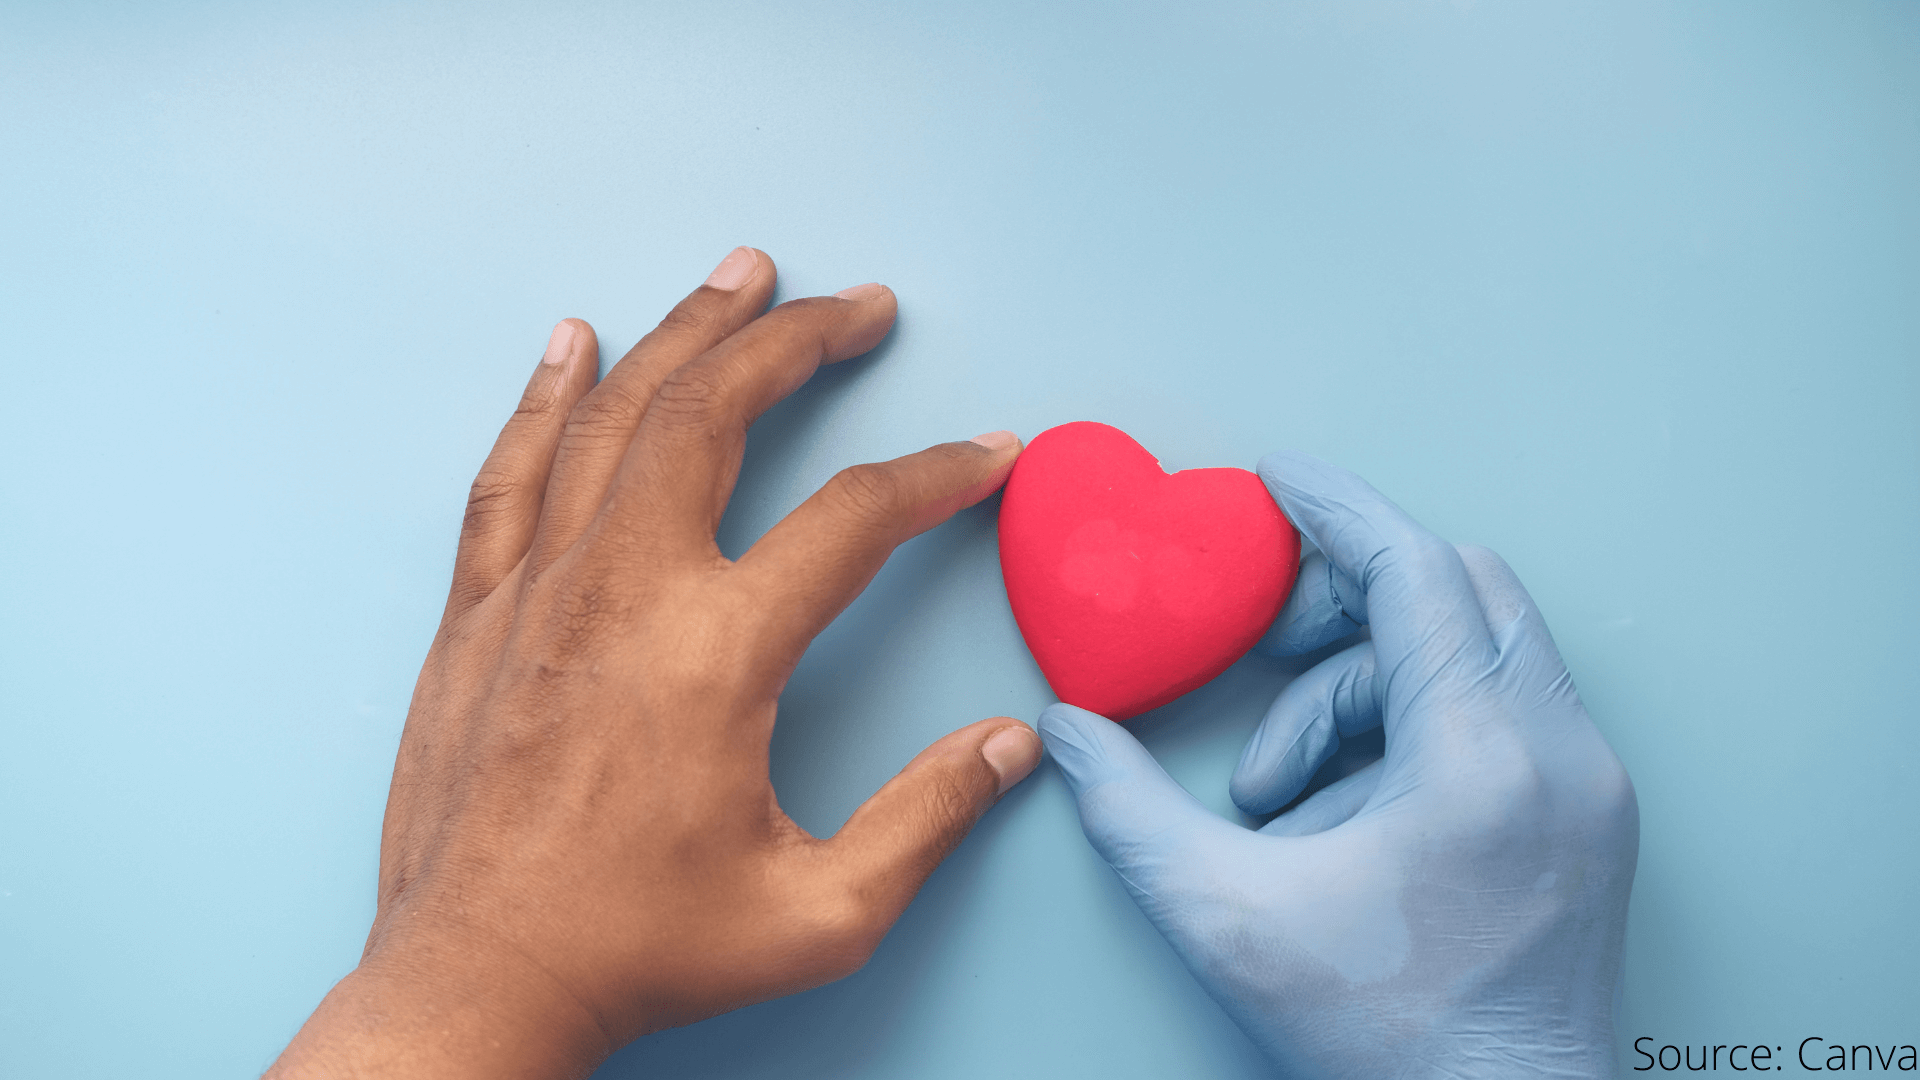 Organ Donation Day - Why One Should Volunteer To Be An Organ Donor